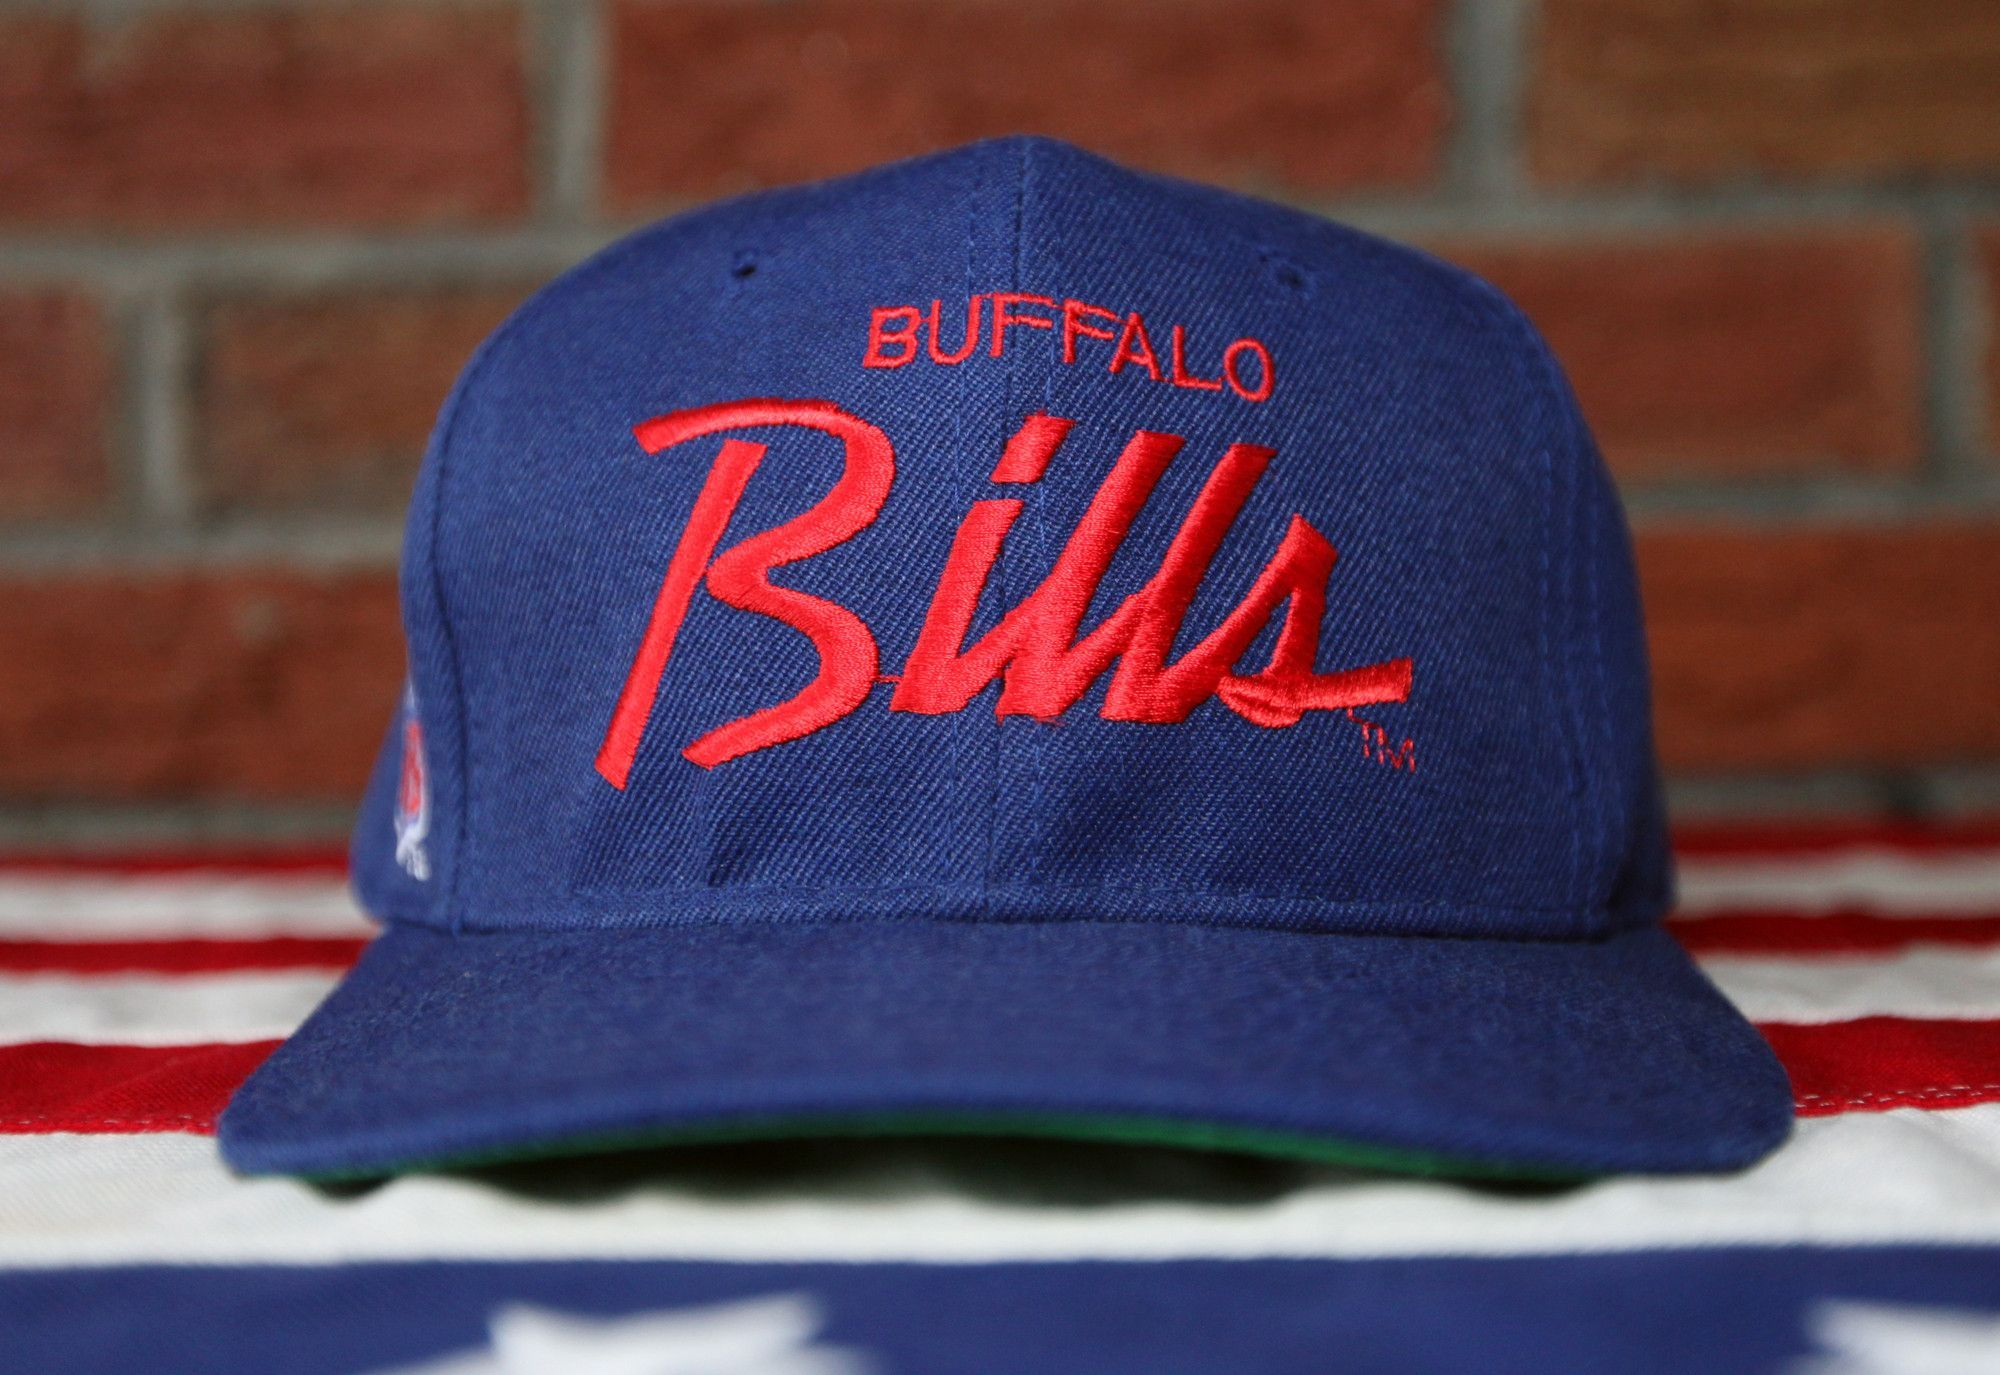 6c212ef9b15f0 Vintage 90 s Buffalo Bills Sports Specialties Single Line Script The Pro  Wool Snapback Hat